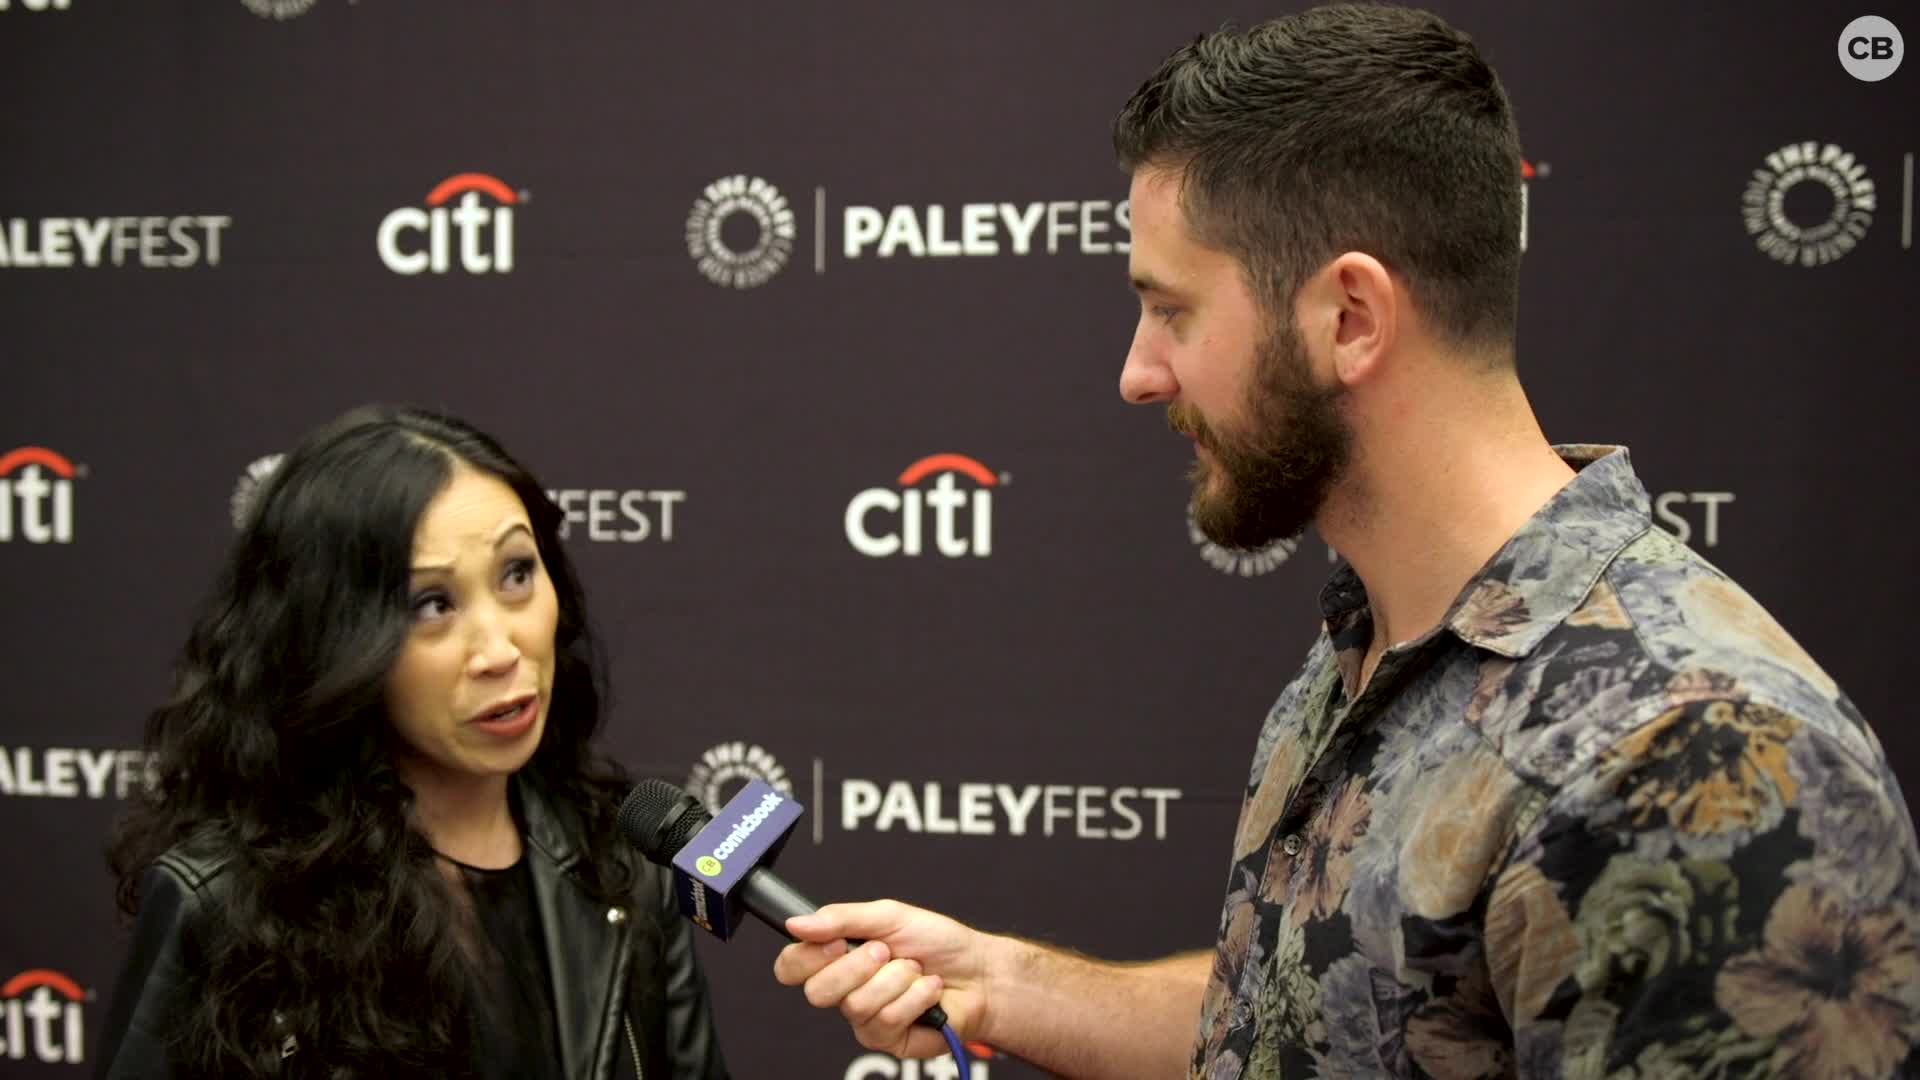 Angela Kang - NYCC 2019 Exclusive Interview screen capture